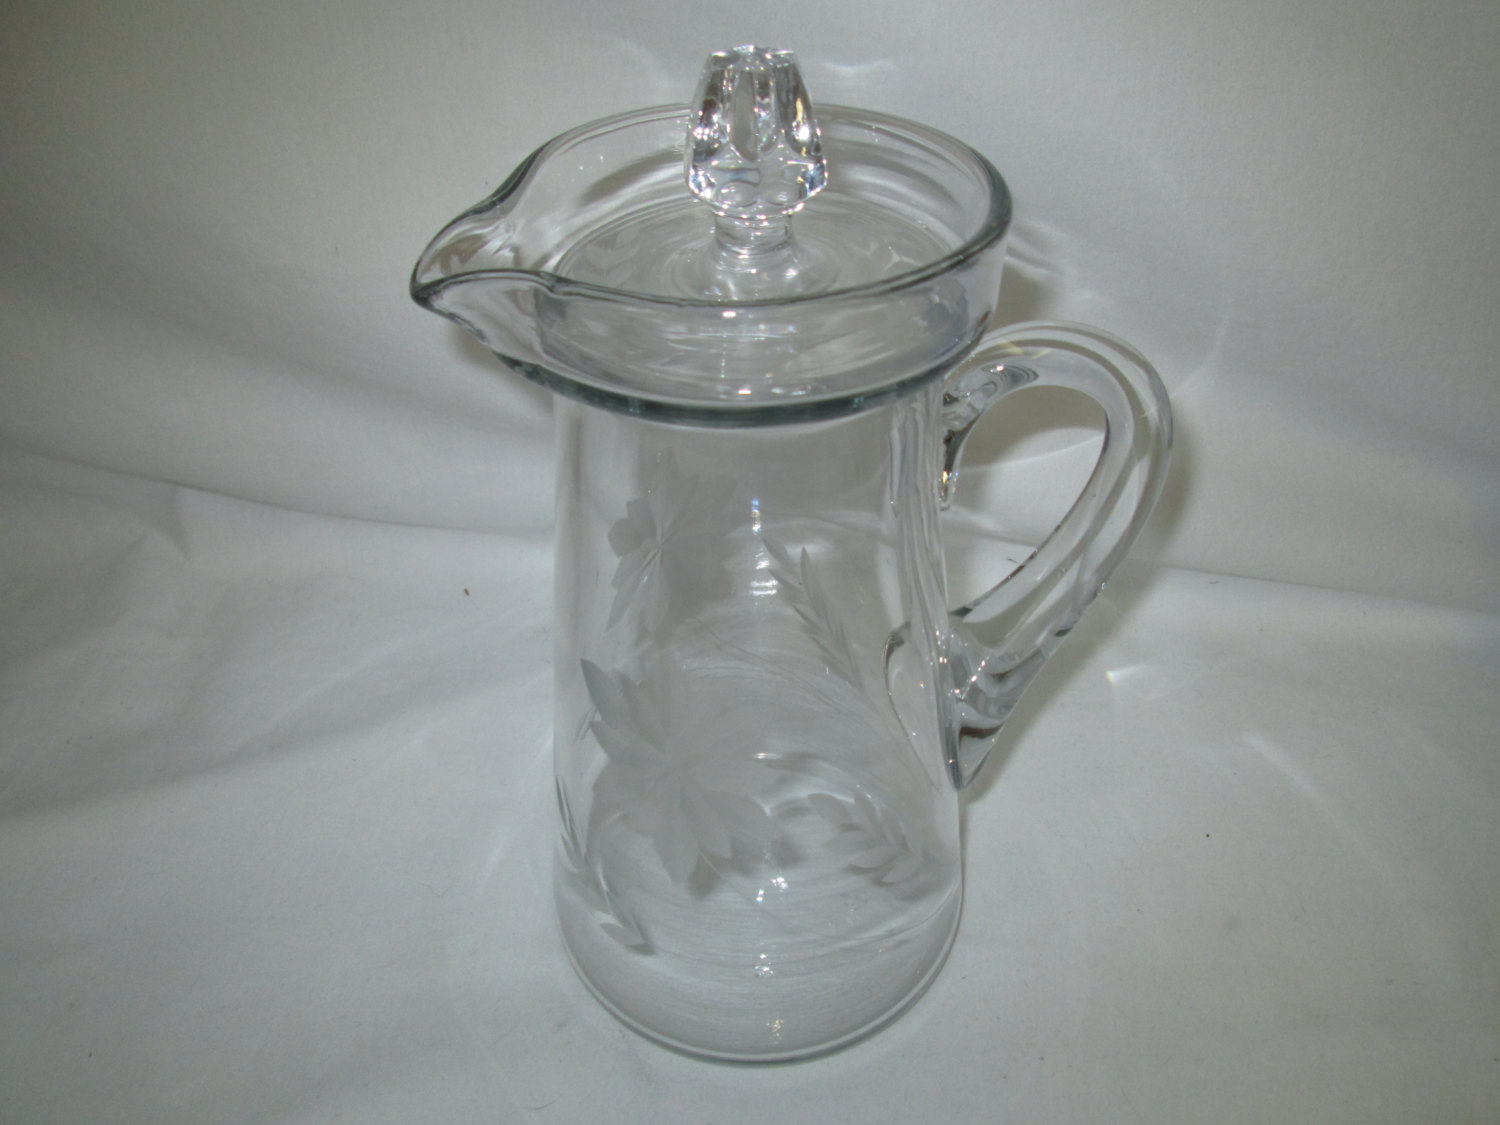 Small Glass Pitcher With Lid Vintage Liquor Lemonade Iced Tea Decanter Clear Cut Glass